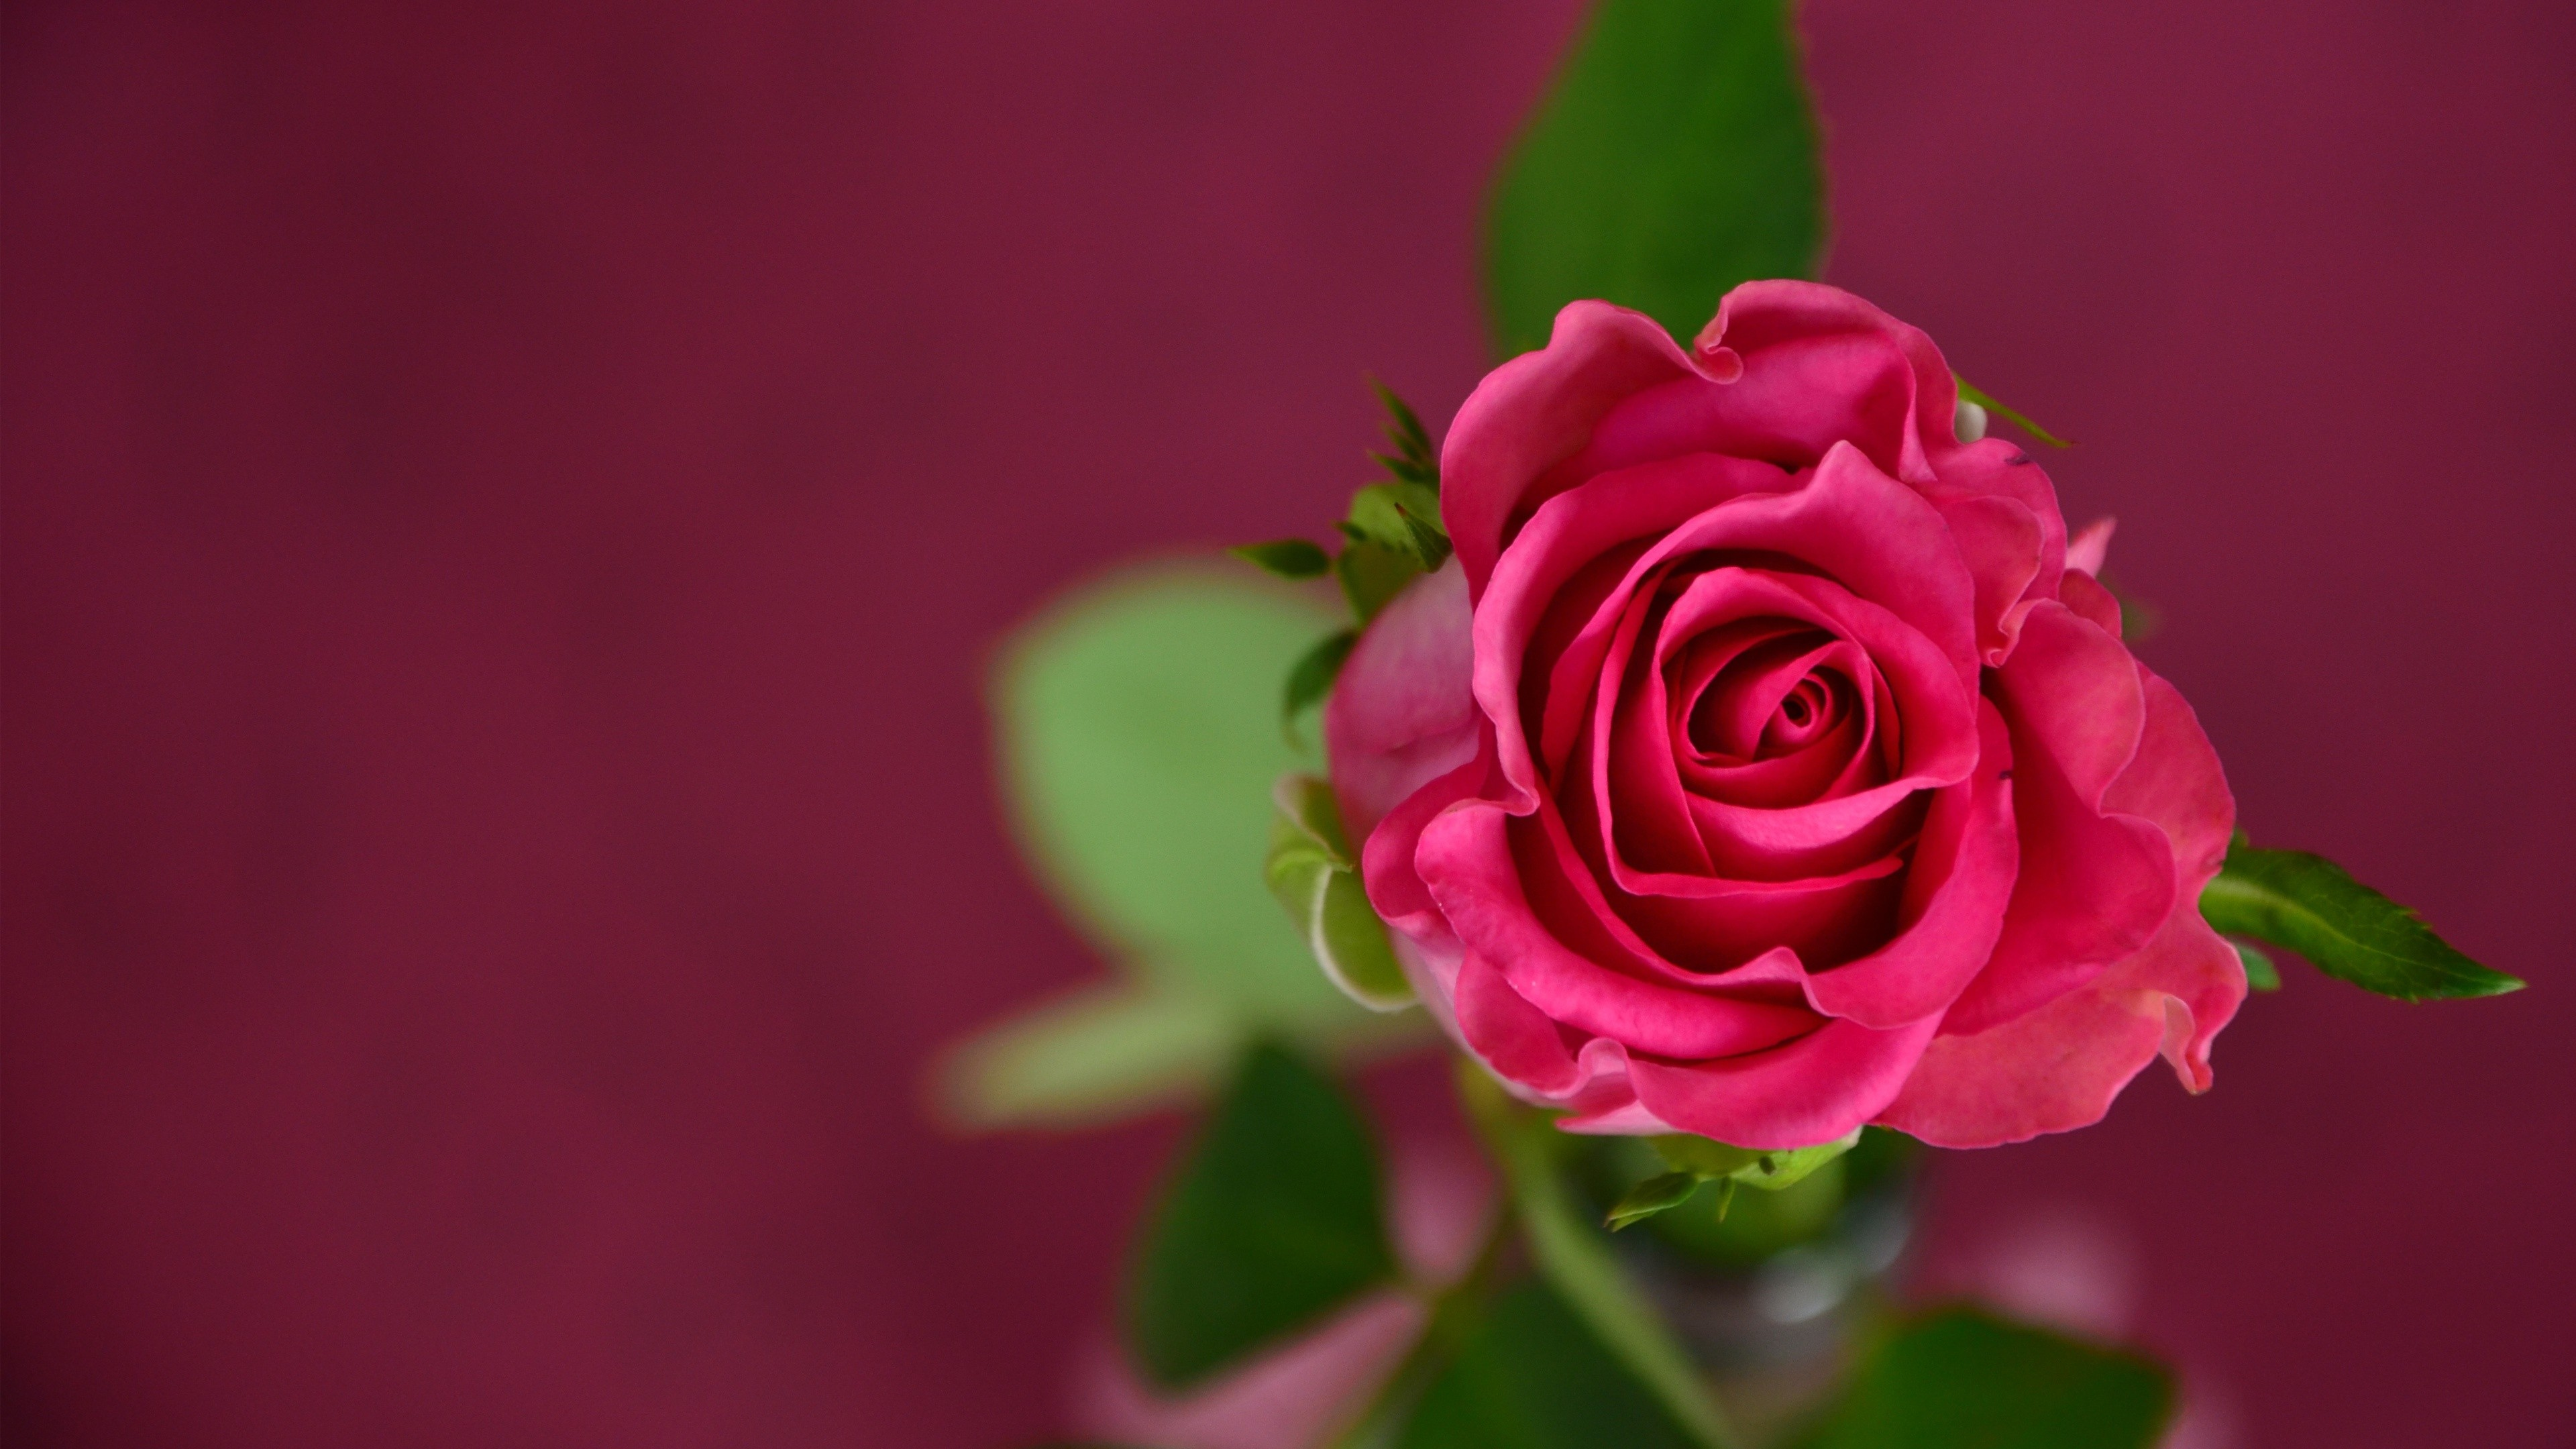 Wallpaper rose 4k hd wallpaper pink spring flower - Pink rose hd wallpaper ...